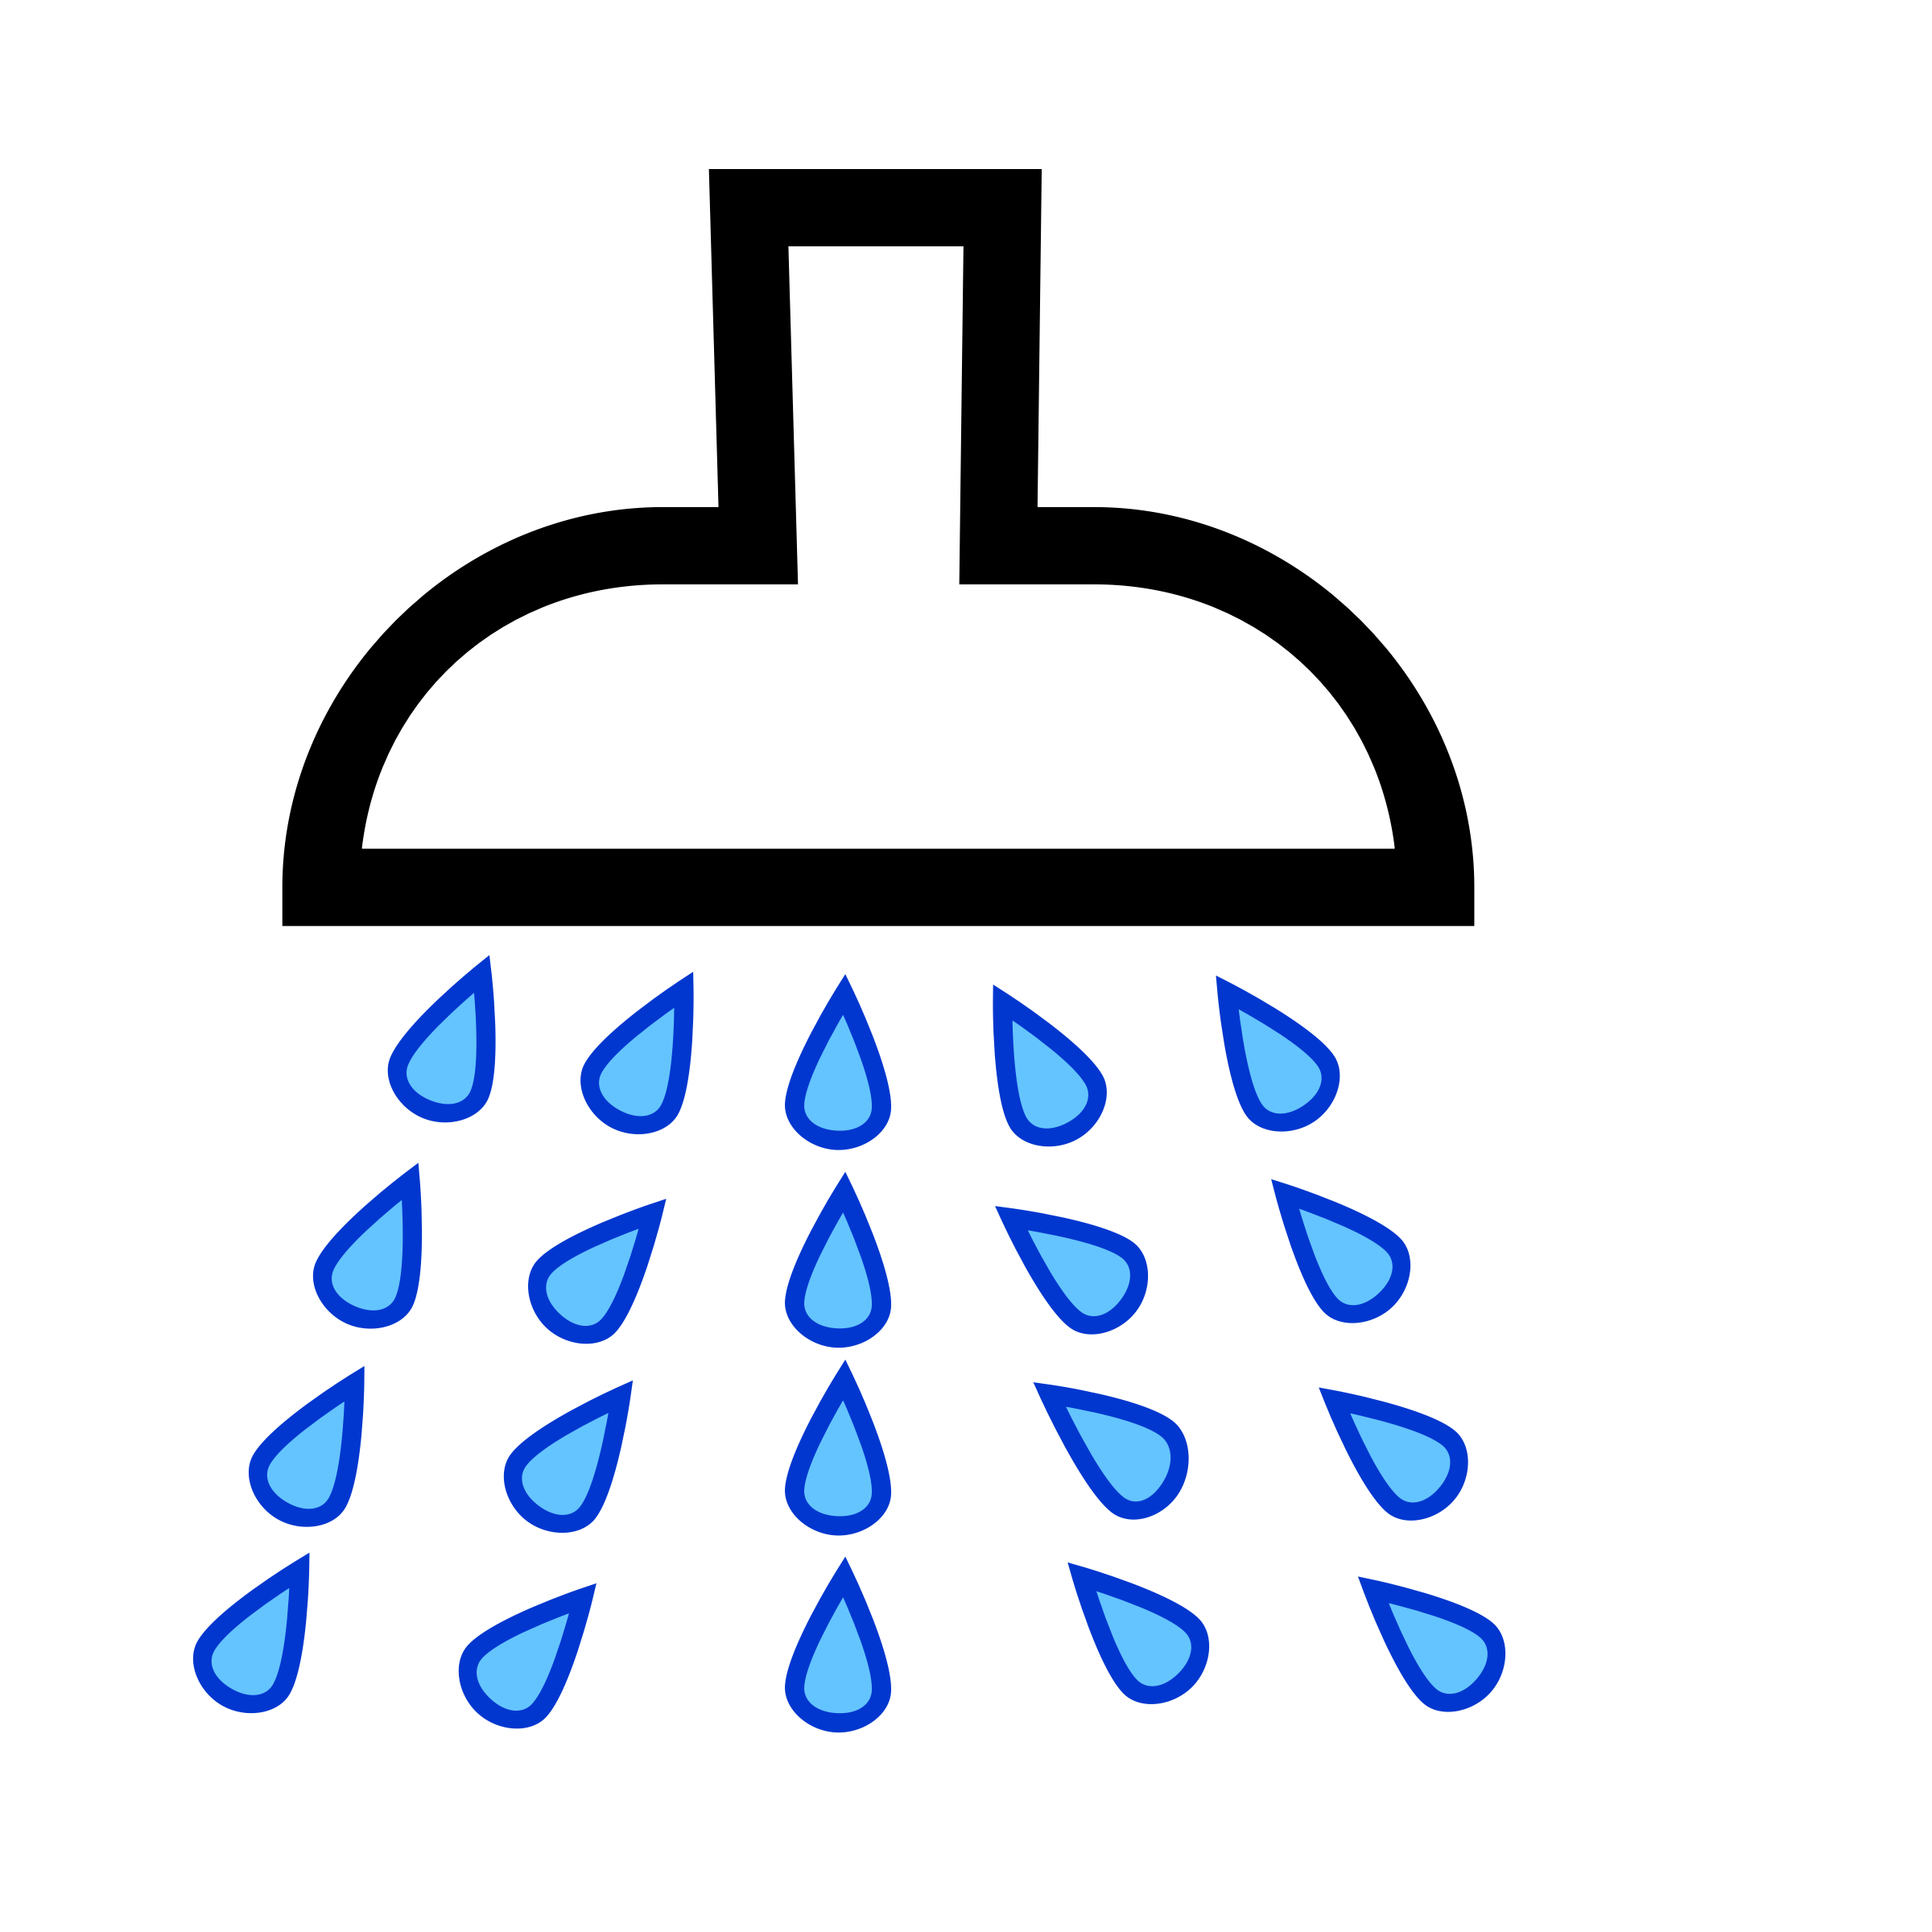 Shower clipart free download clip art on 3.